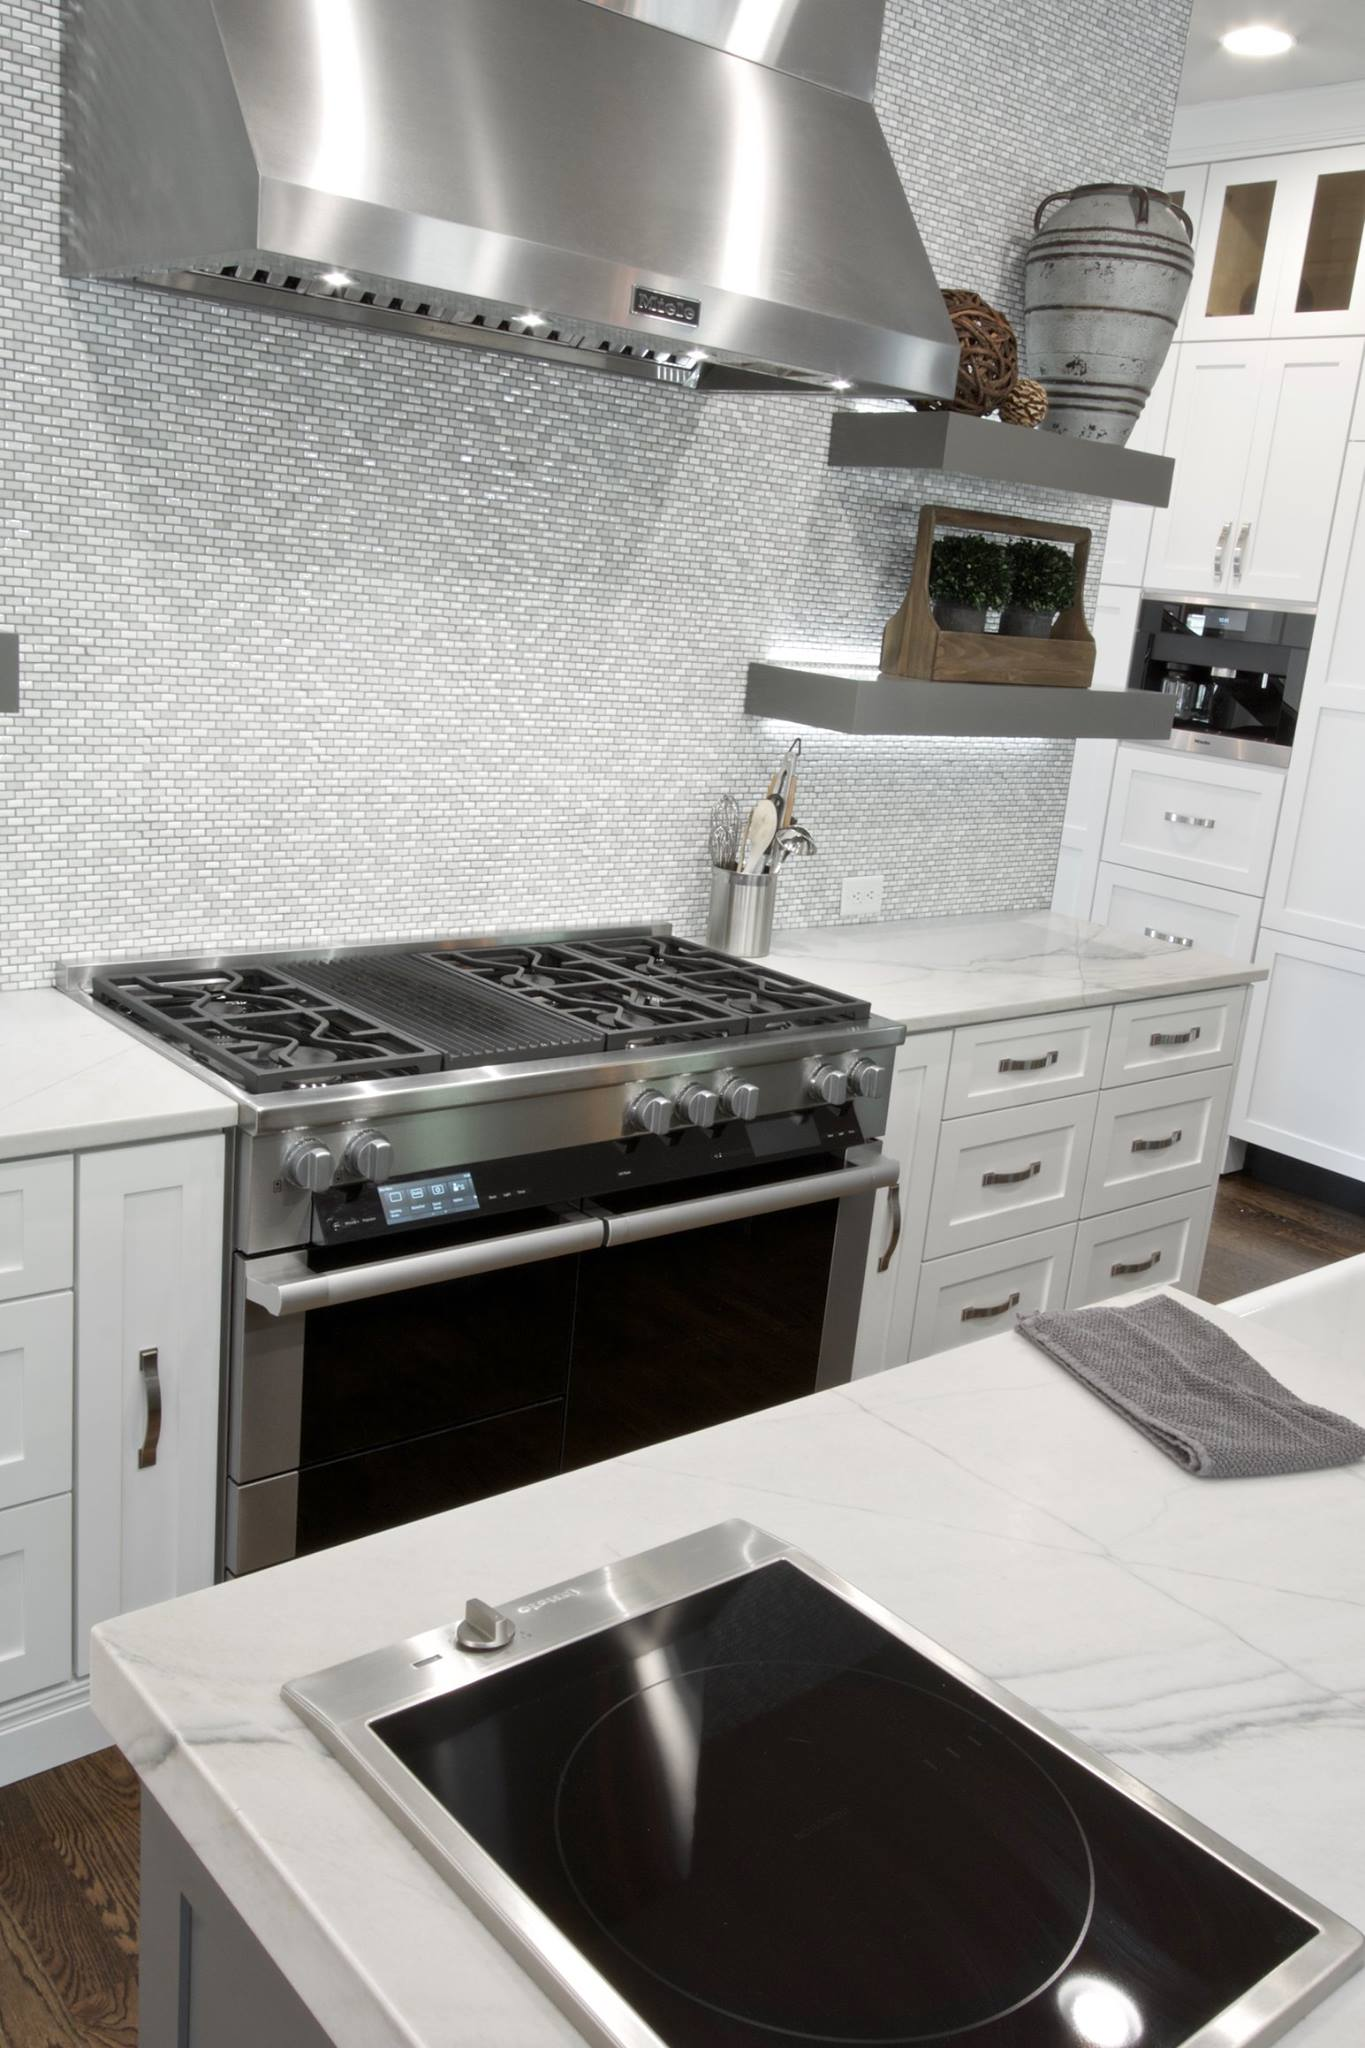 Miele Professional Appliances - Come touch, feel, and see why they are the best.  Located in Suwanee Georgia our factory showroom features the best in professional grade appliances and designer kitchen cabinetry. Just drop in or call to reserve an appoint